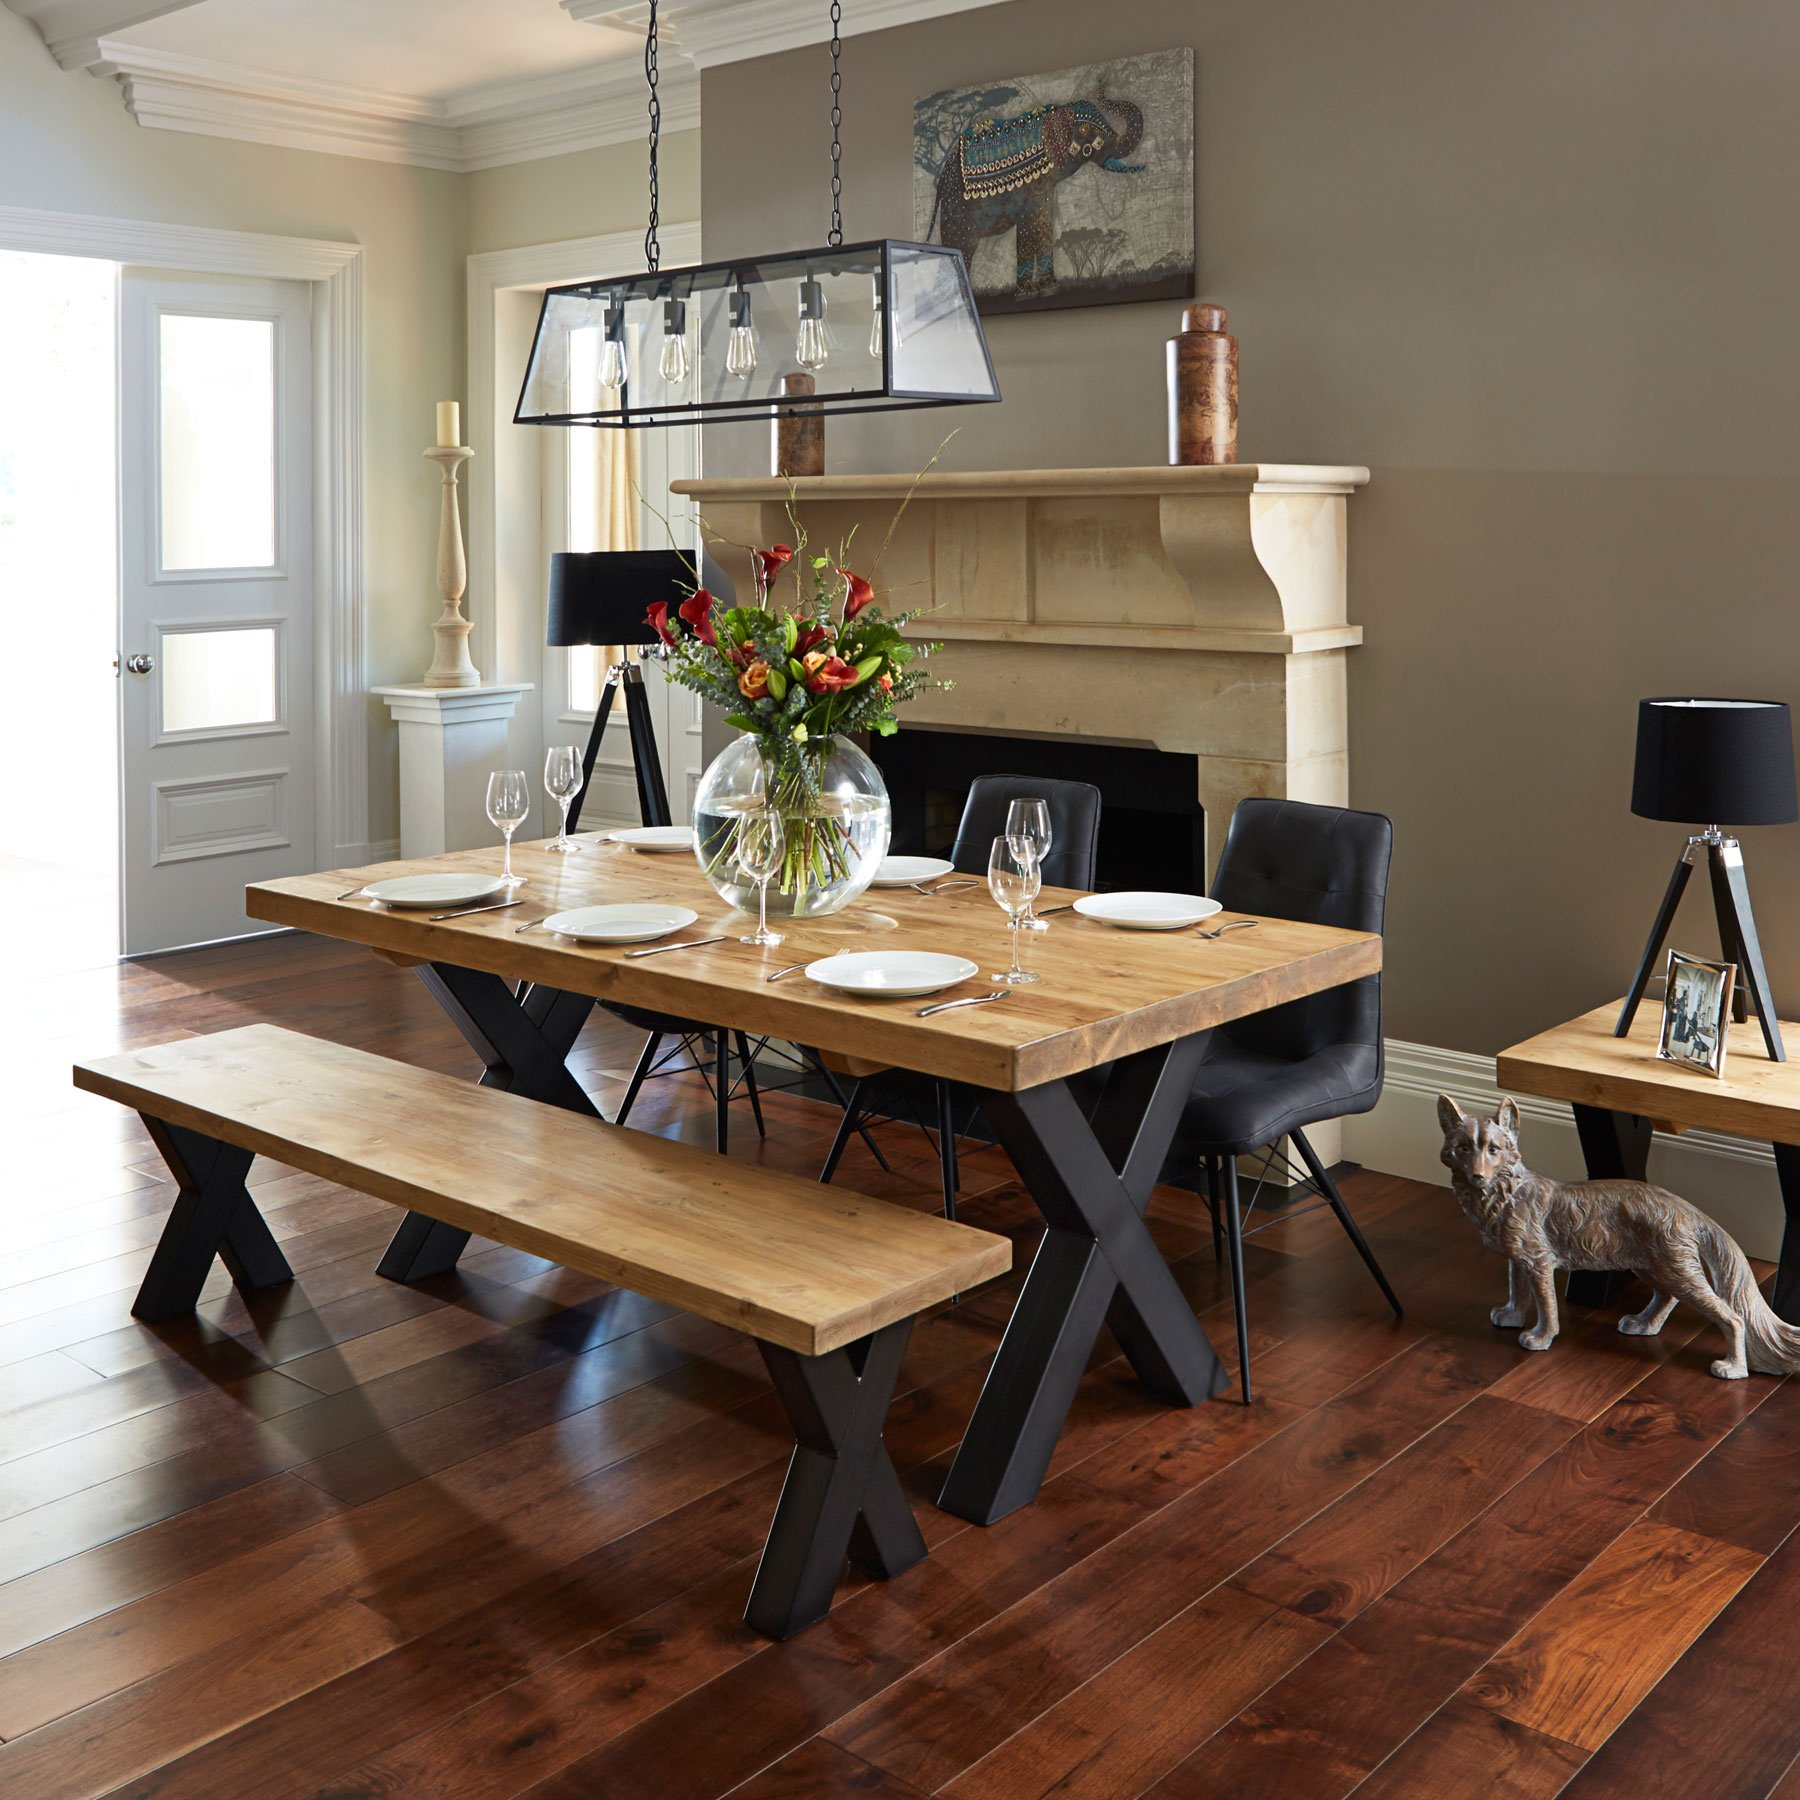 Ragana Reclaimed Timber Dining Table With Bench 3 Dining Chairs in measurements 1800 X 1800